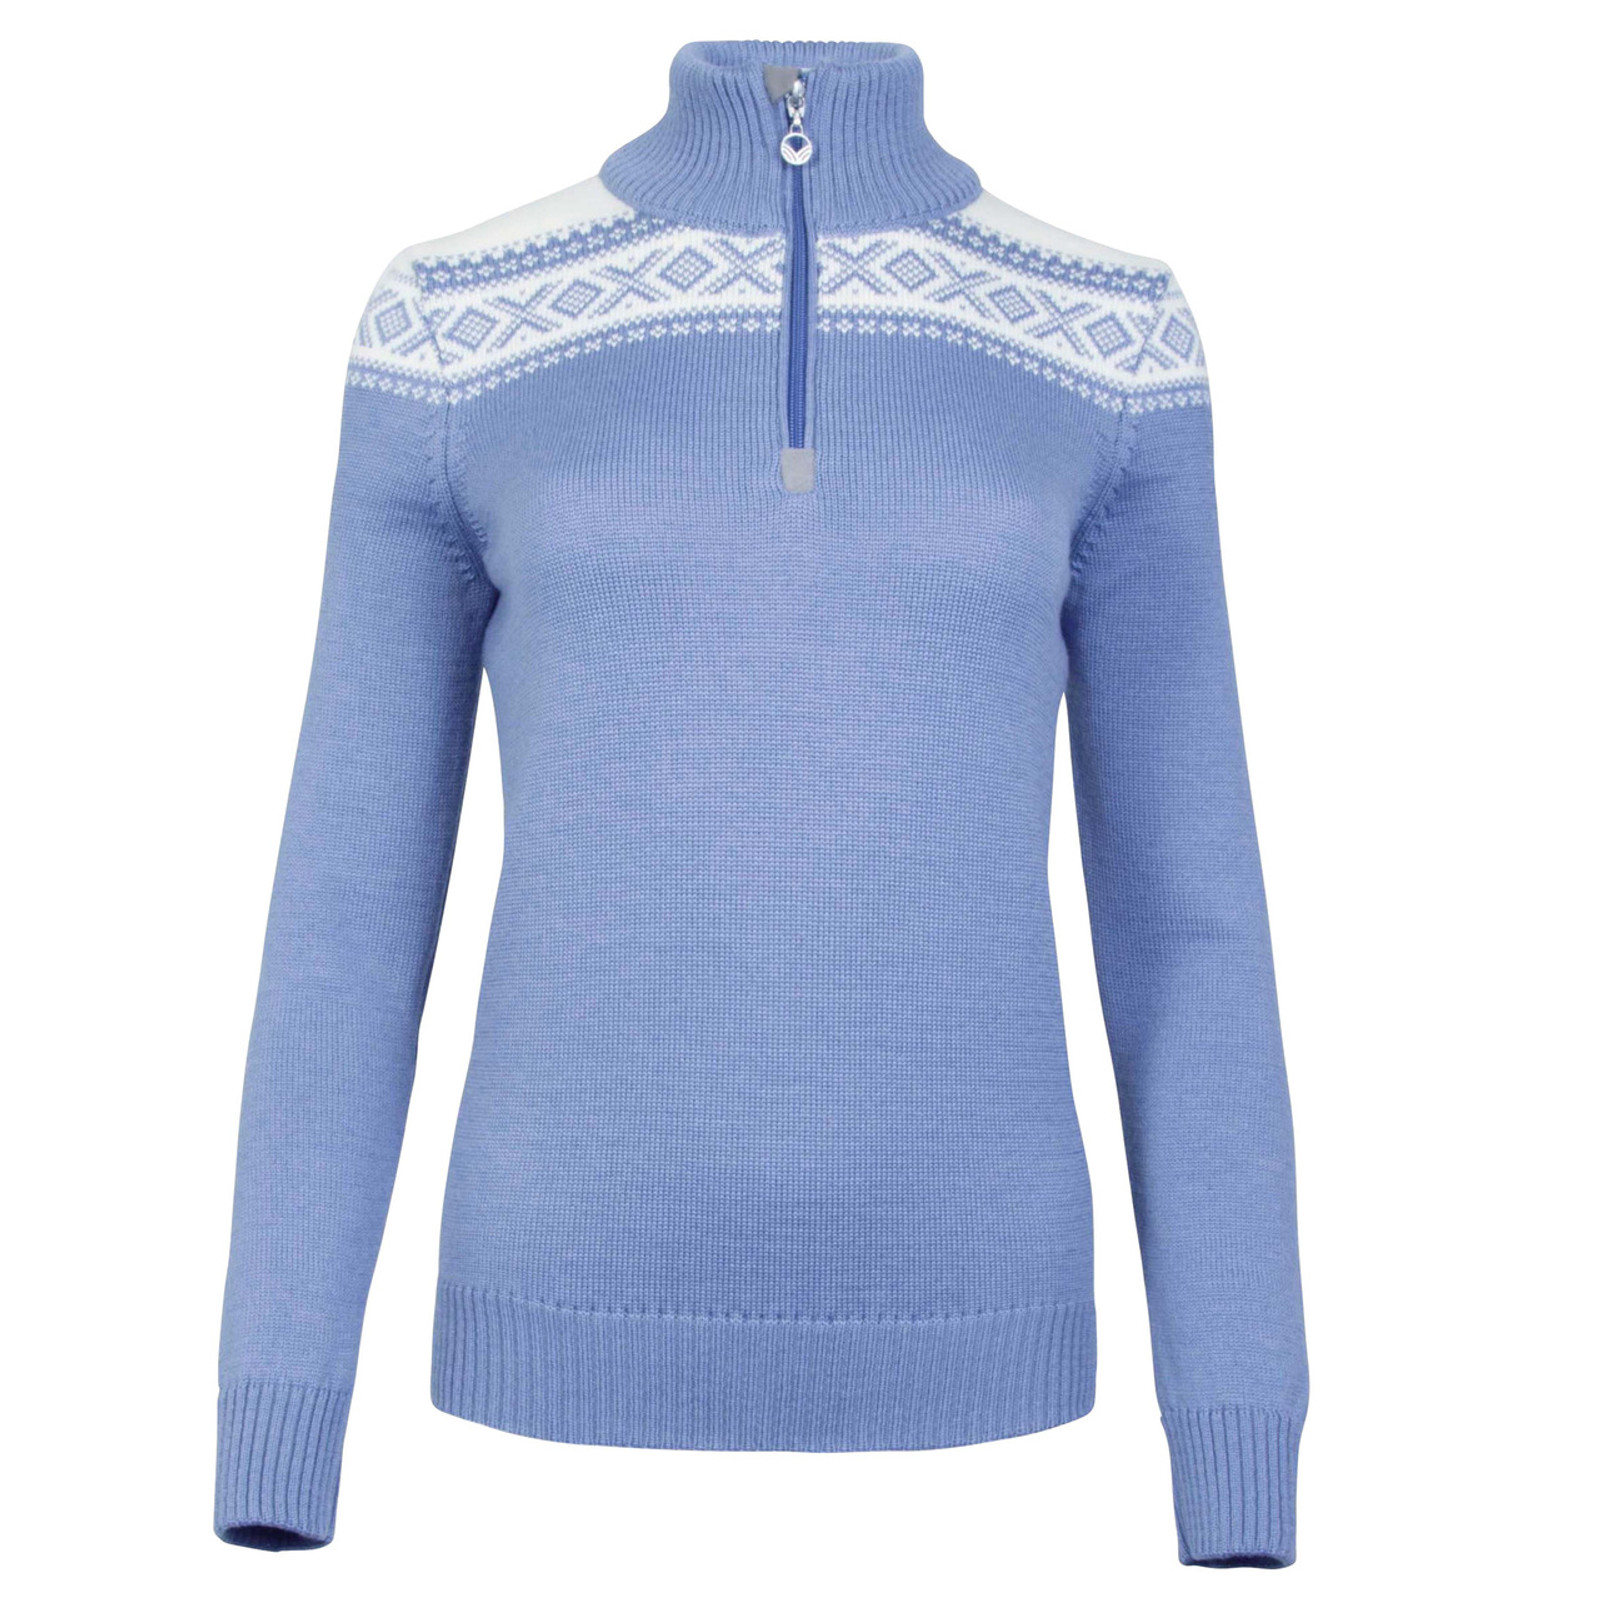 Dale of Norway Cortina Merino sweater in Blue Shadow/Off-White, 93811-D